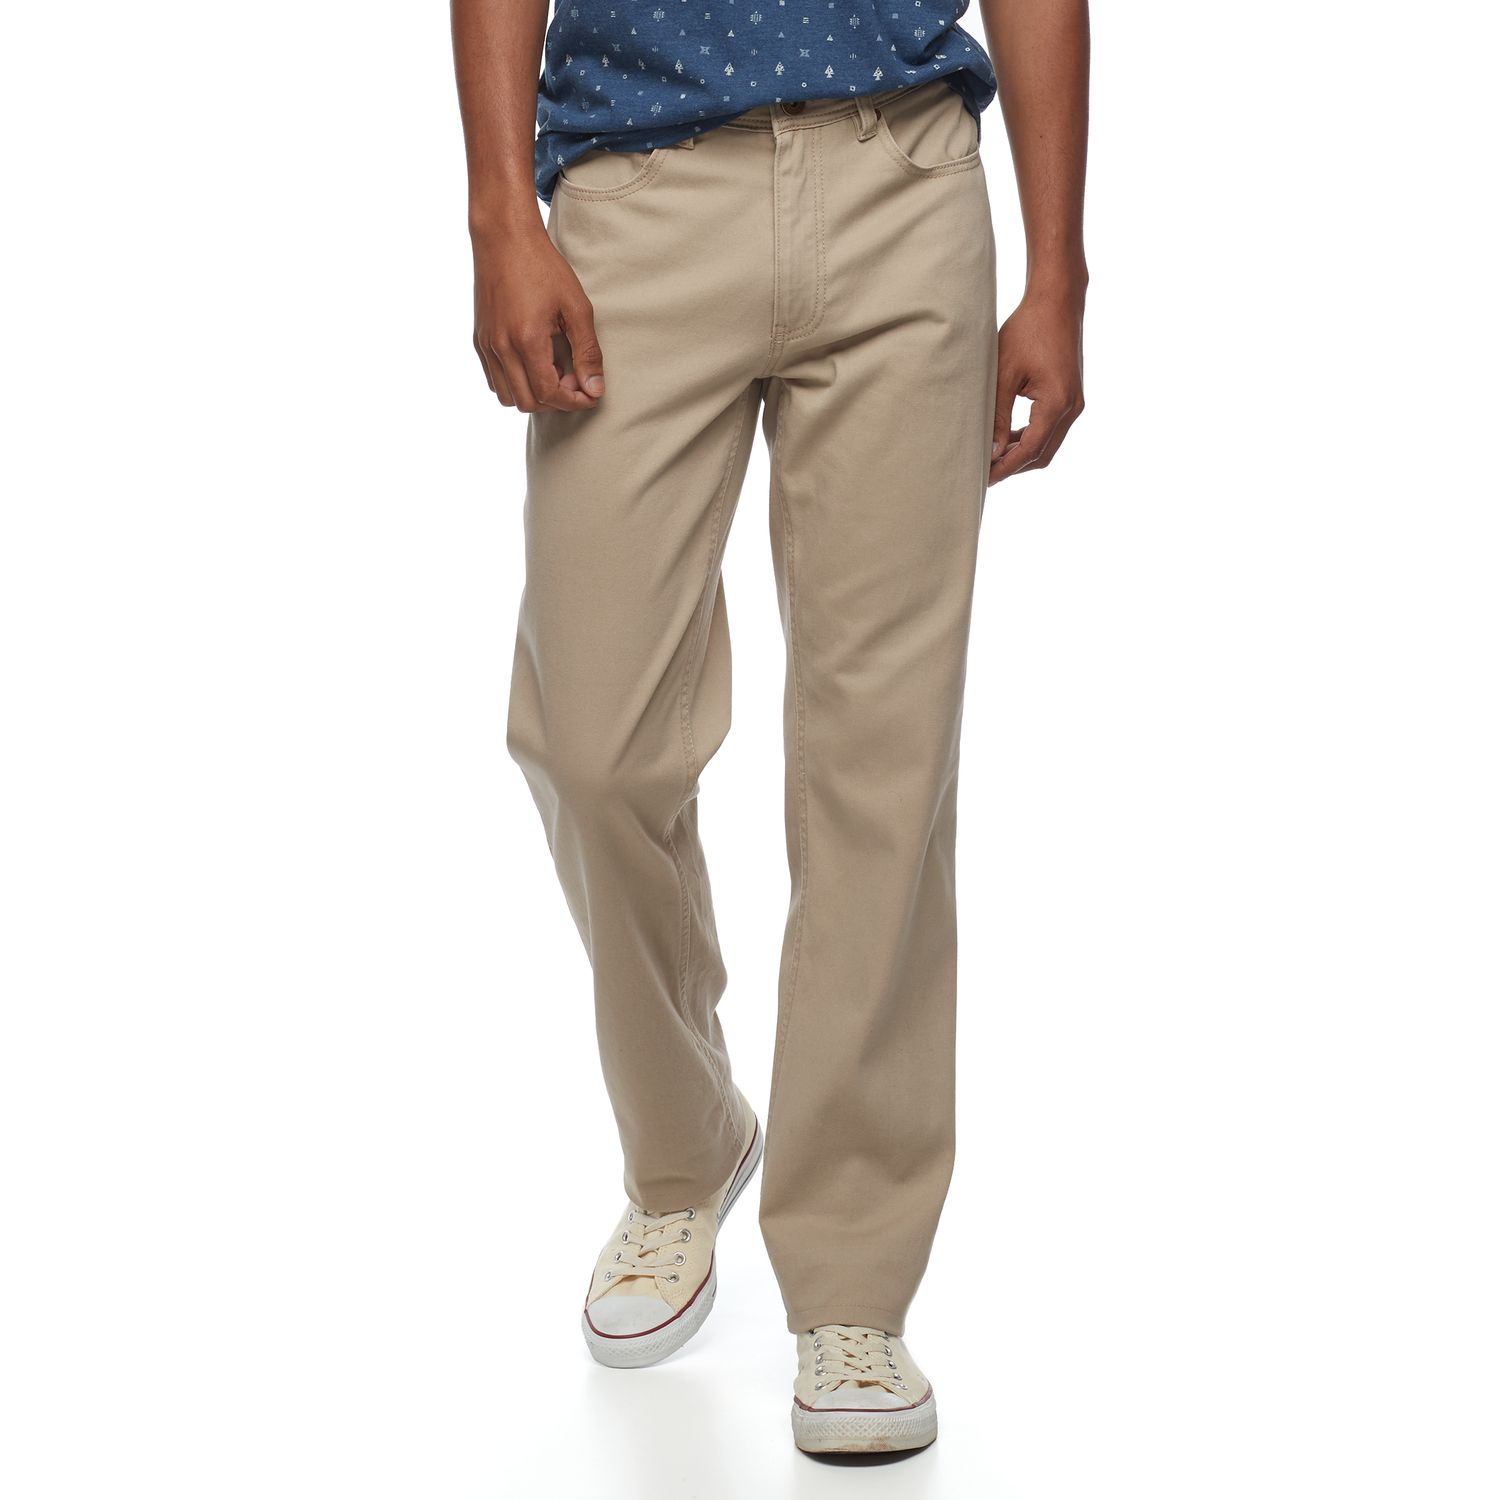 Khaki Pants For Teens ih6YzFa2